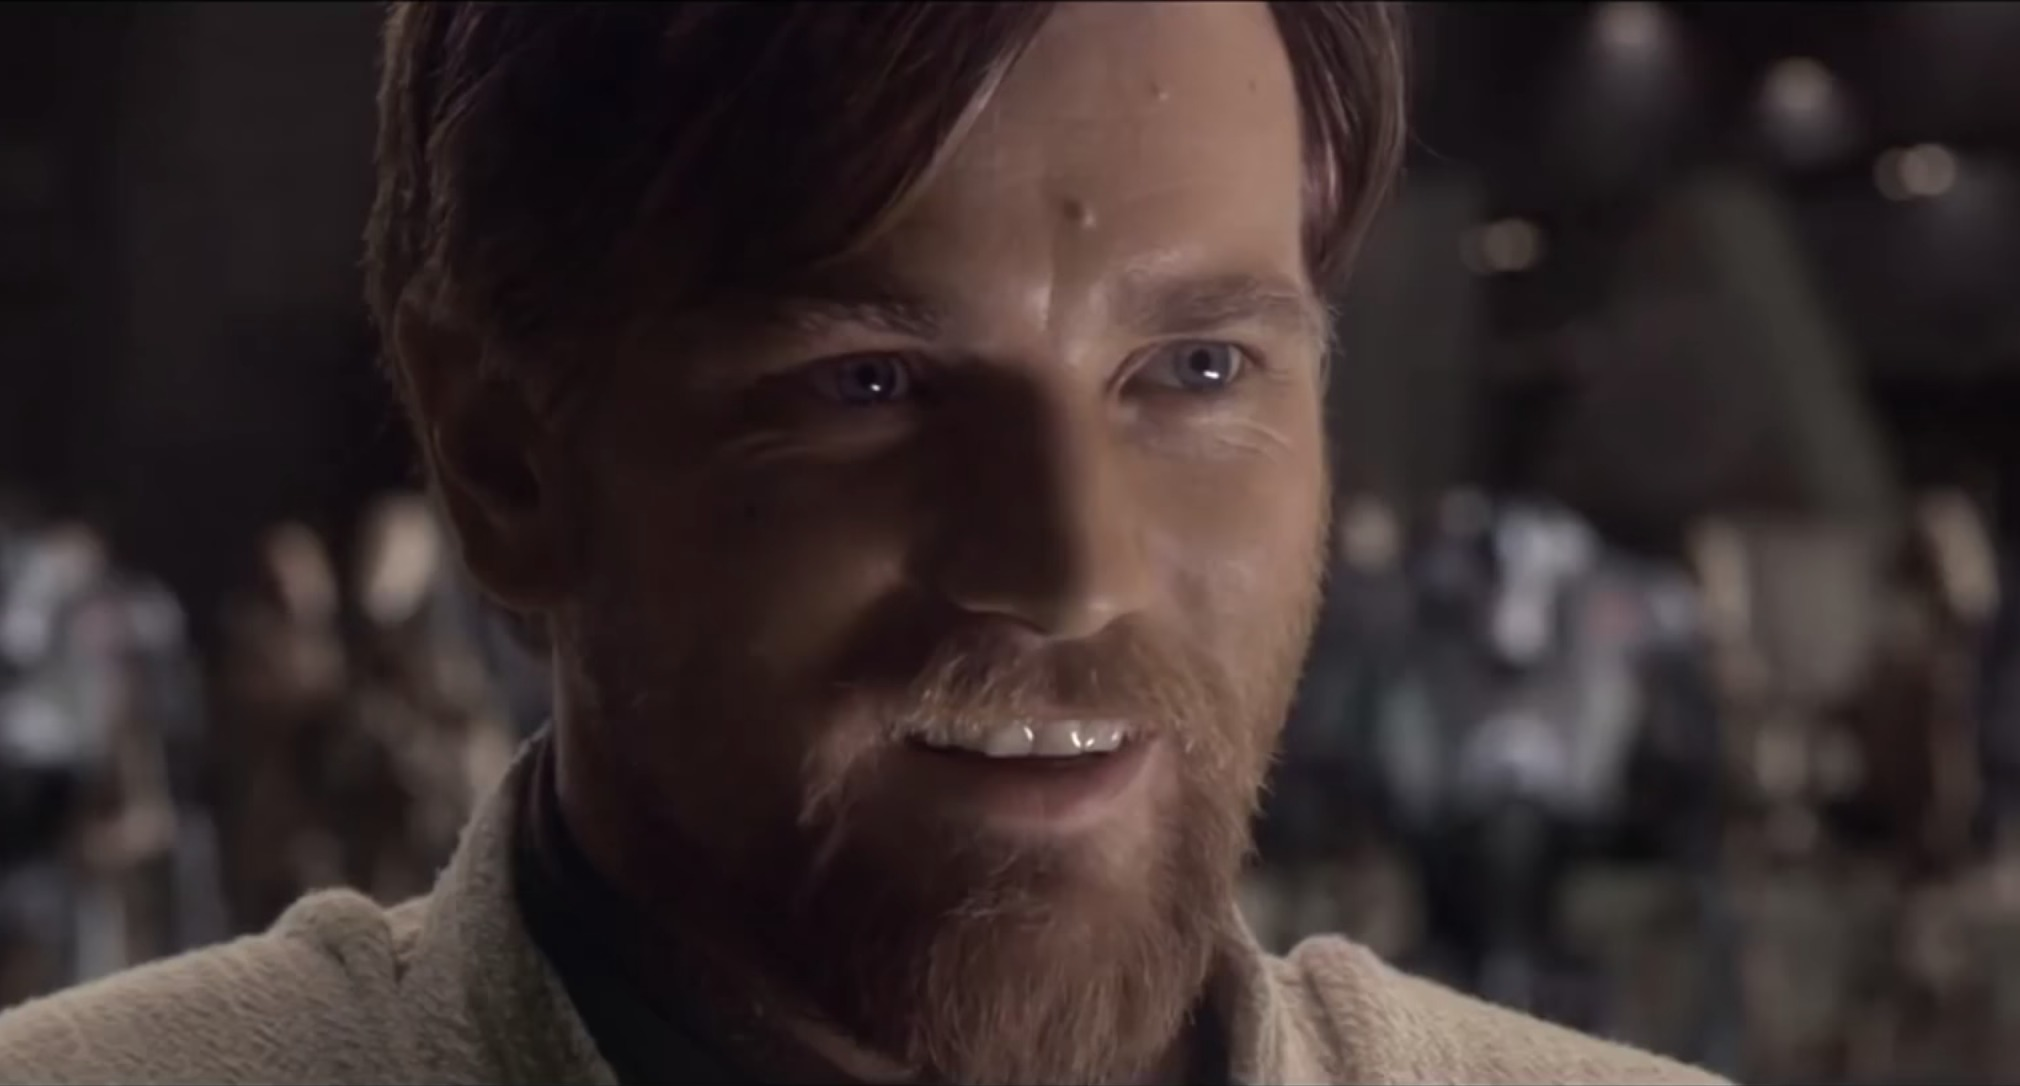 """Rumors about a potential Obi-Wan Kenobi spinoff film began back when Disney announced it would have one-off """"Star Wars"""" films."""